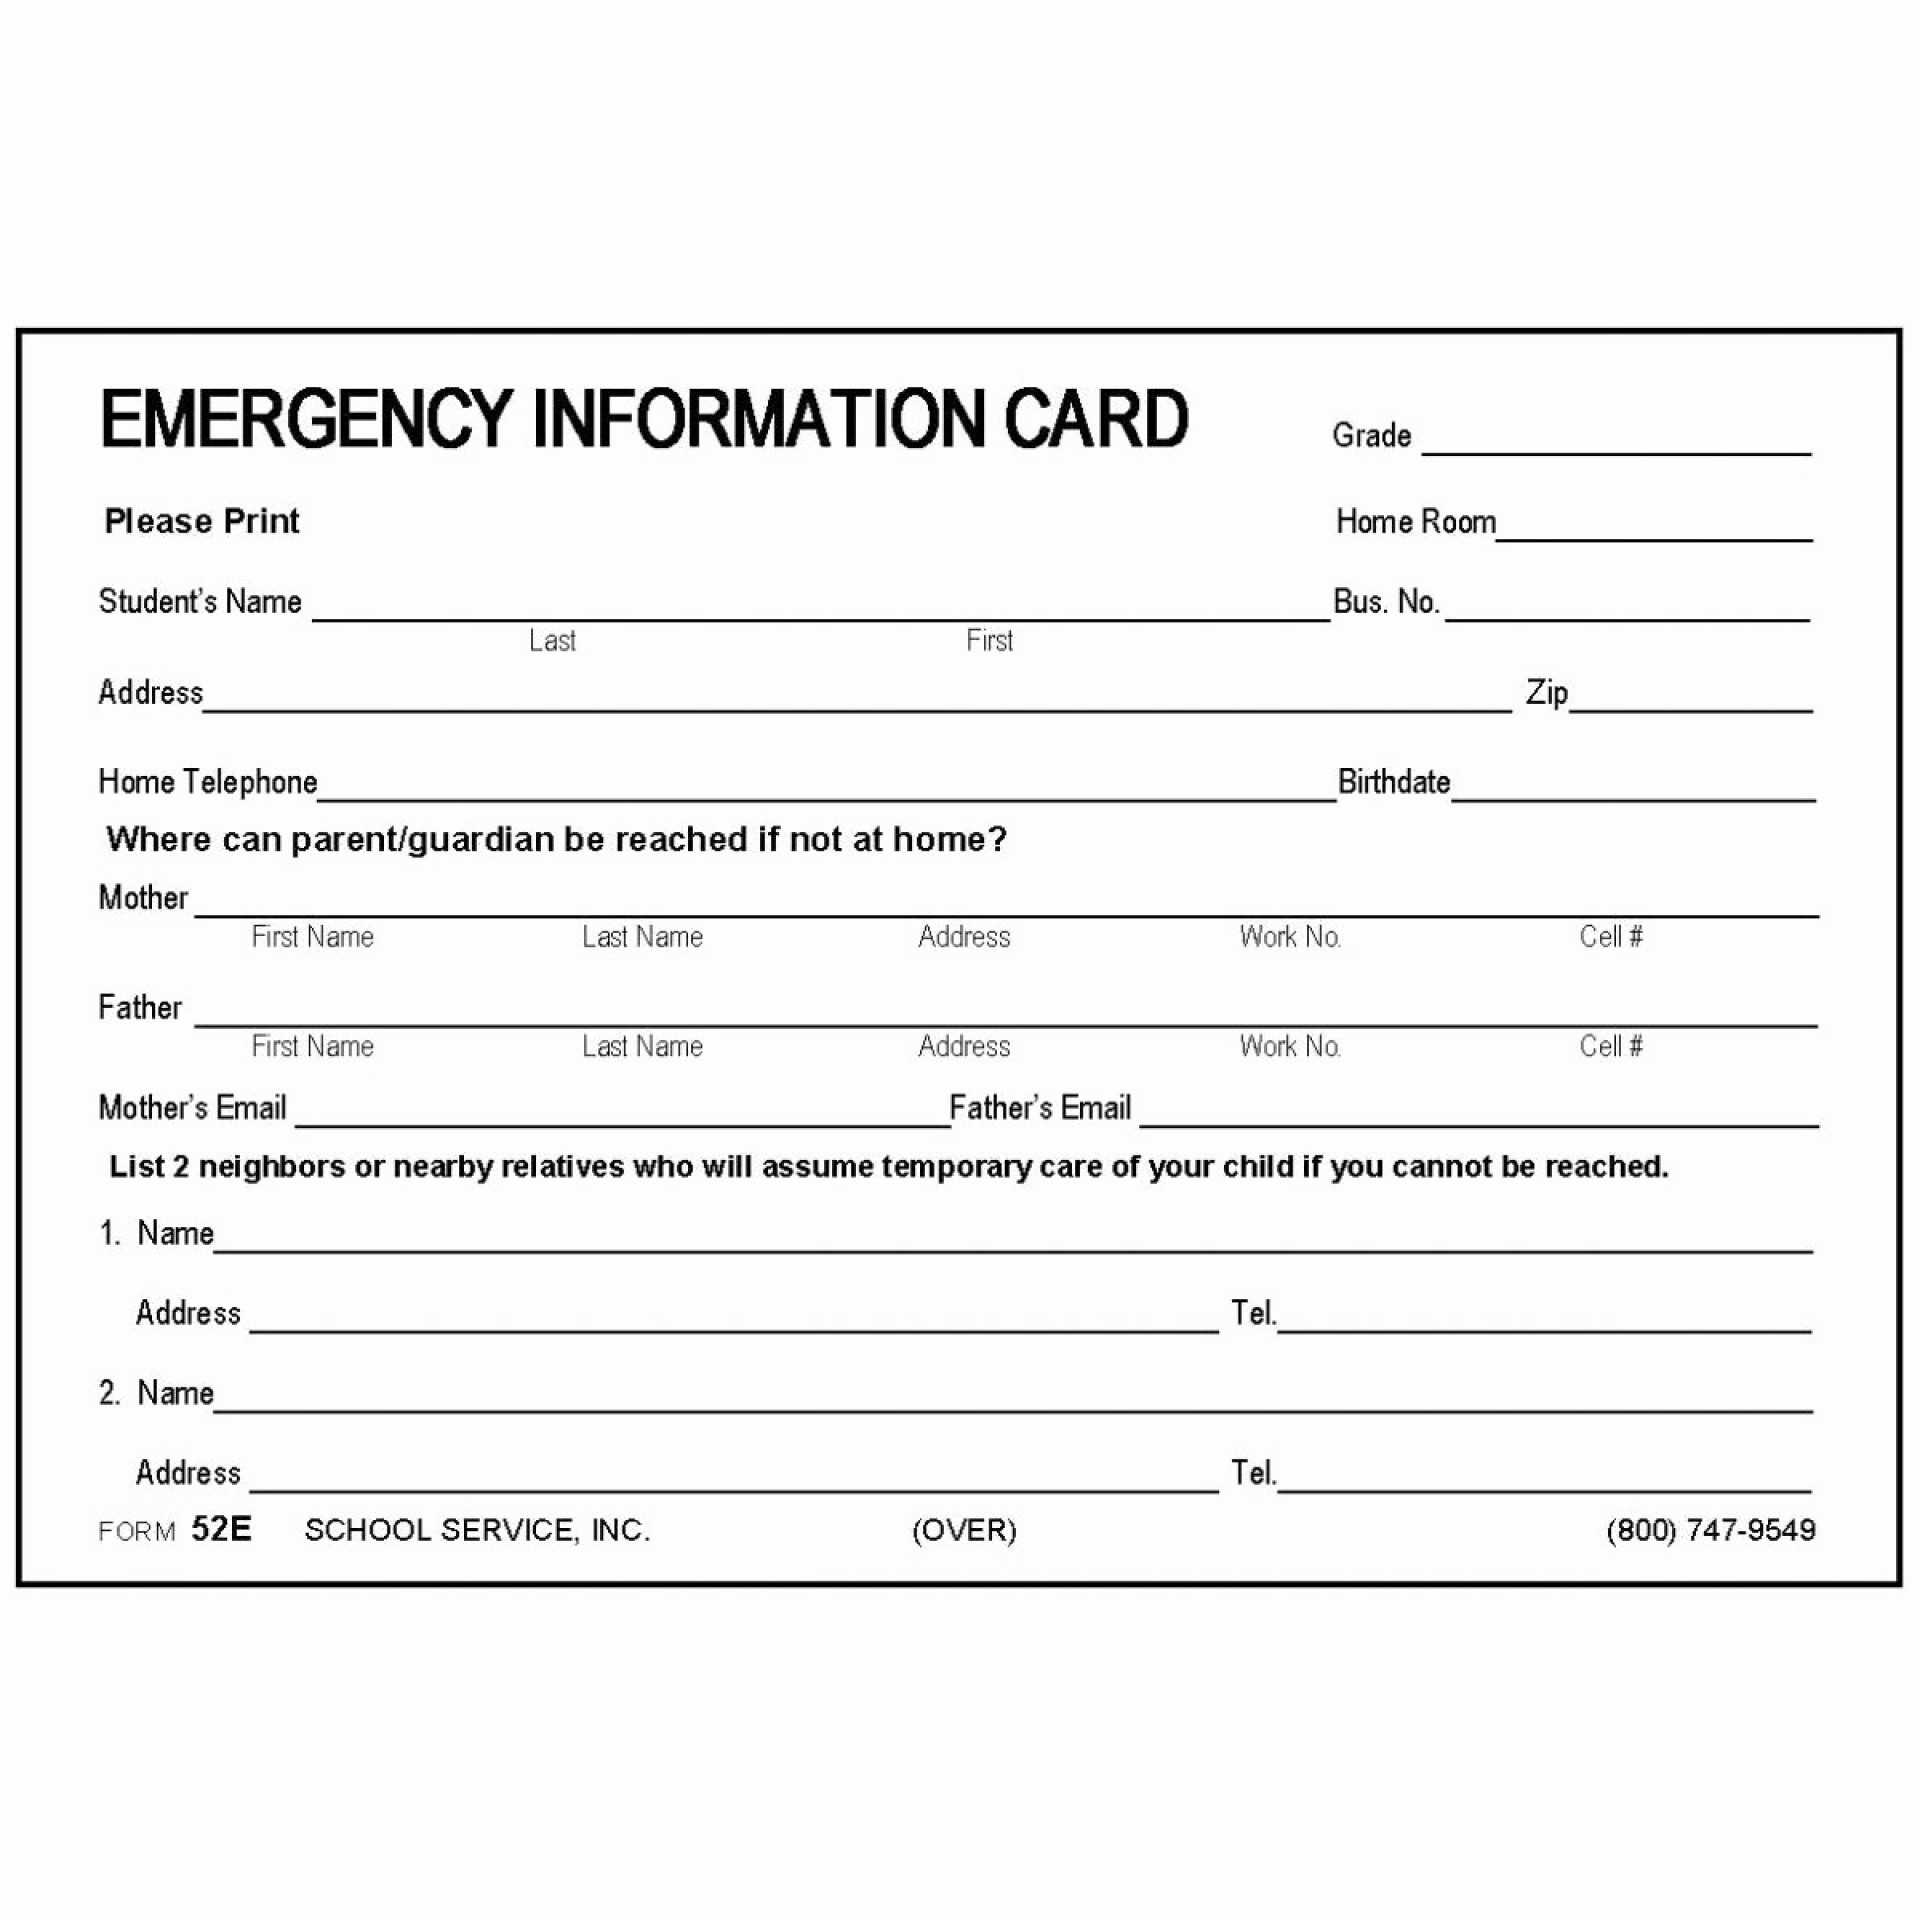 Printable Emergency Contact Cards | Template Business Psd Regarding Emergency Contact Card Template